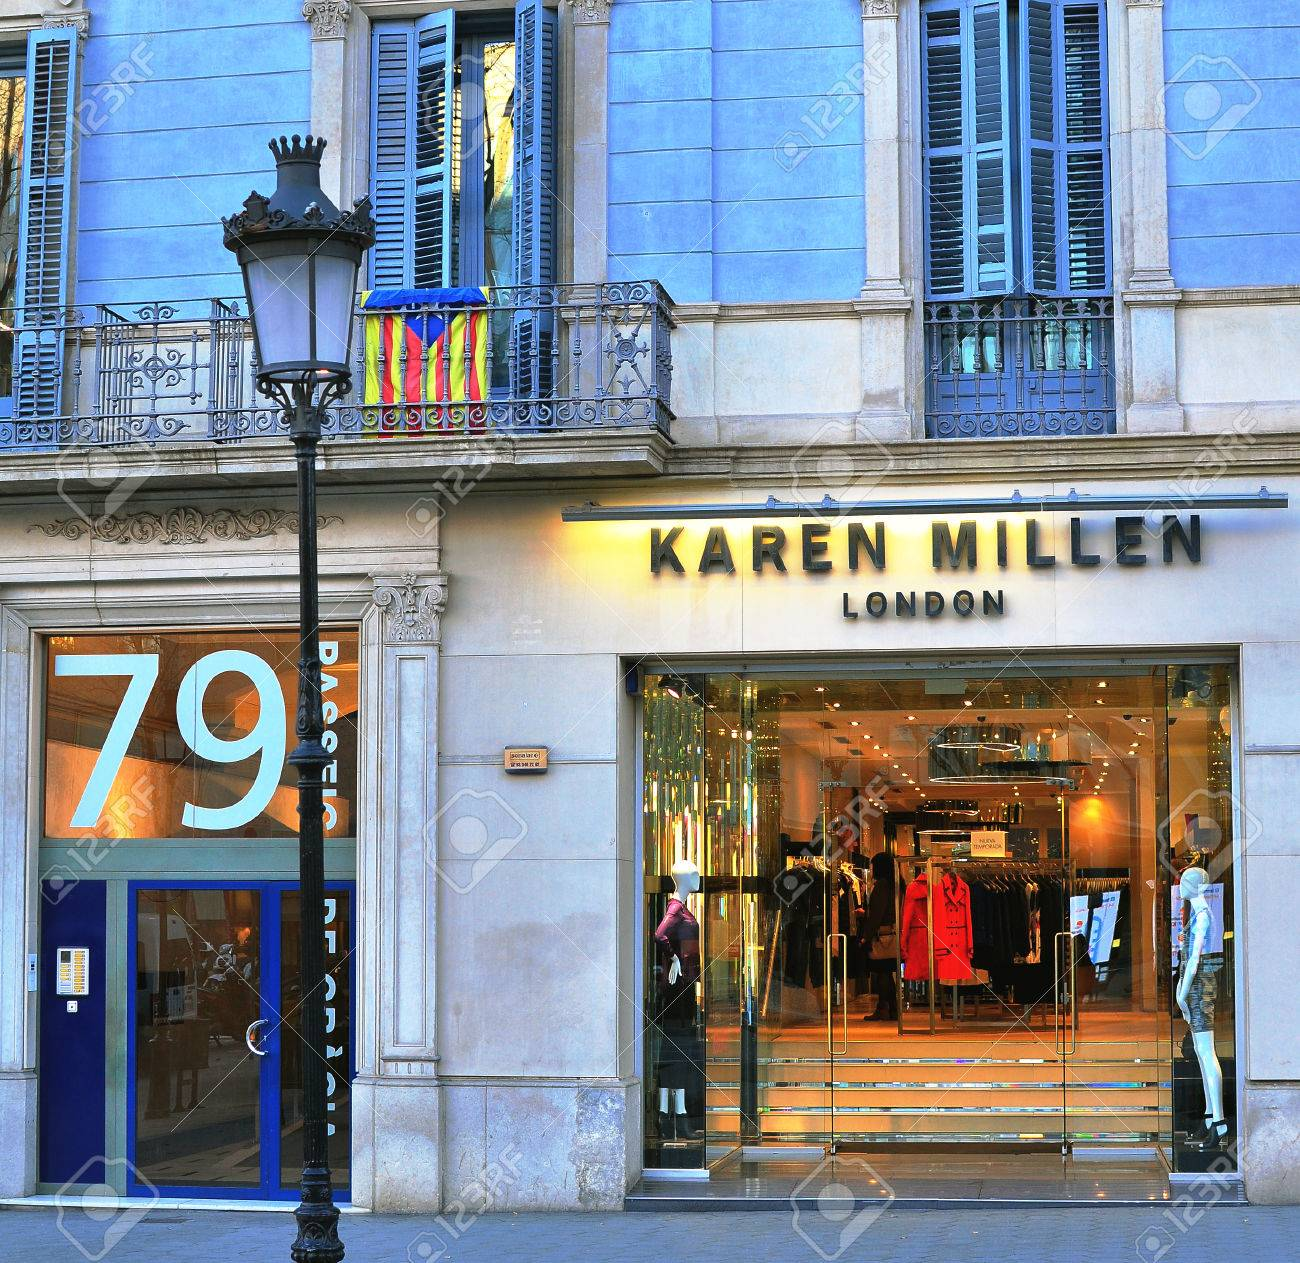 Barcelona Spain February 5 Karen Millen Flagship Store In Stock Photo Picture And Royalty Free Image Image 51412051